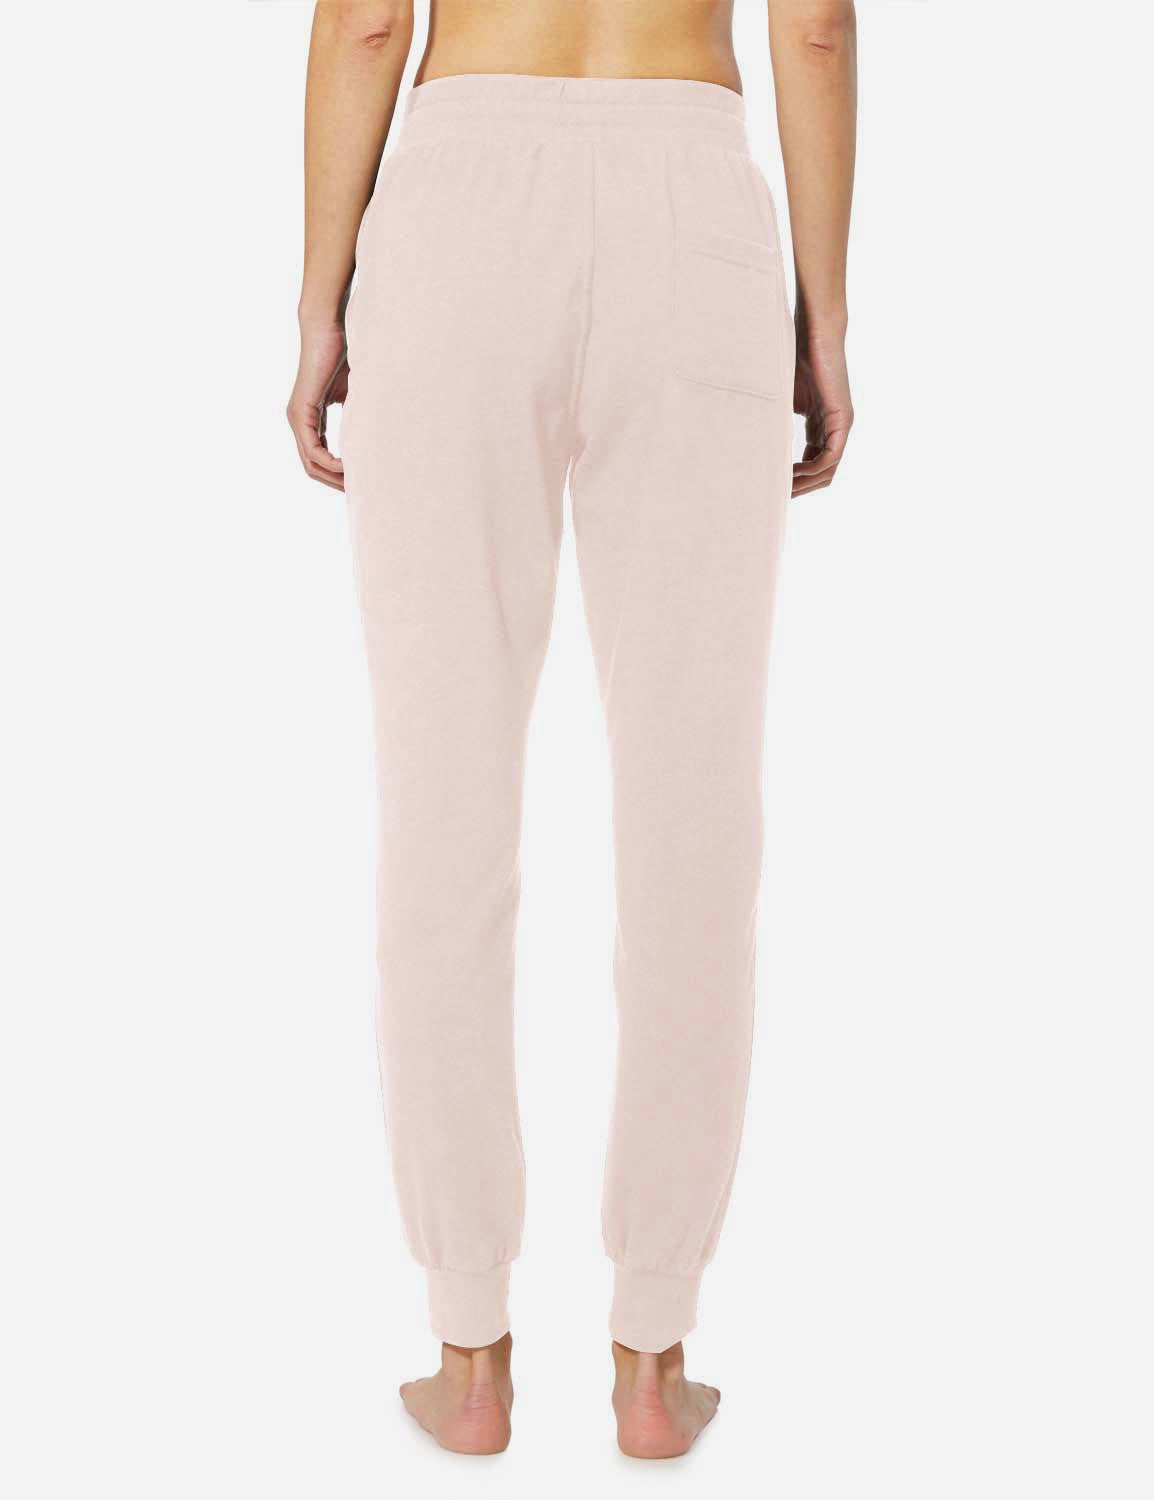 Baleaf Womens Tapered Drawcord Pants light pink back